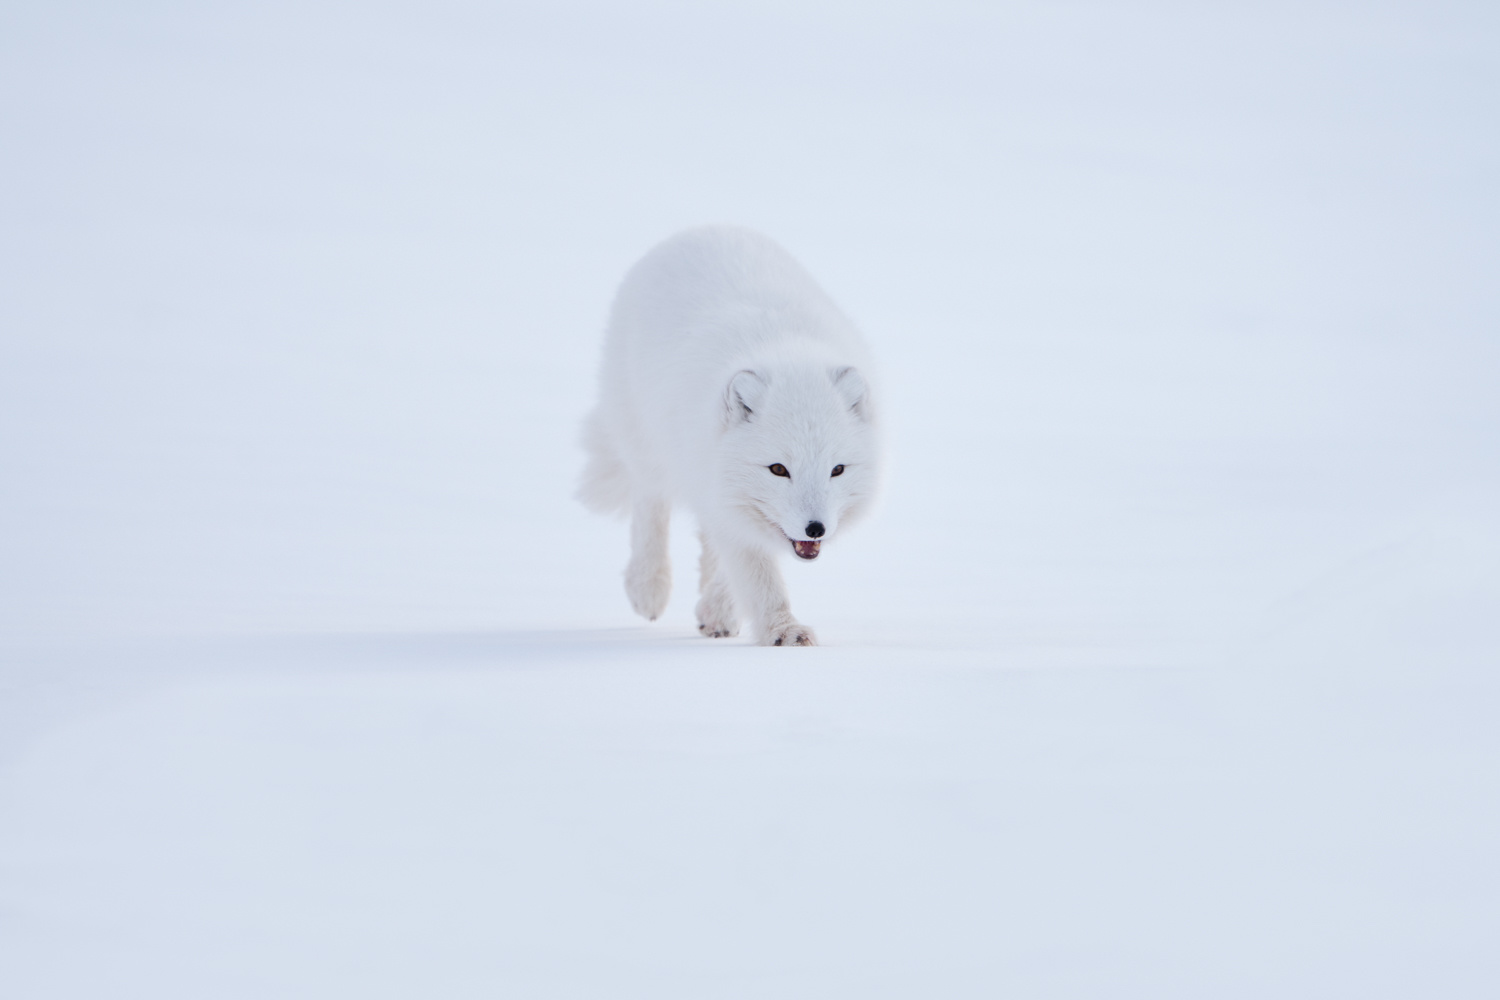 First encounter an arctic fox by Masahiro Ikeda